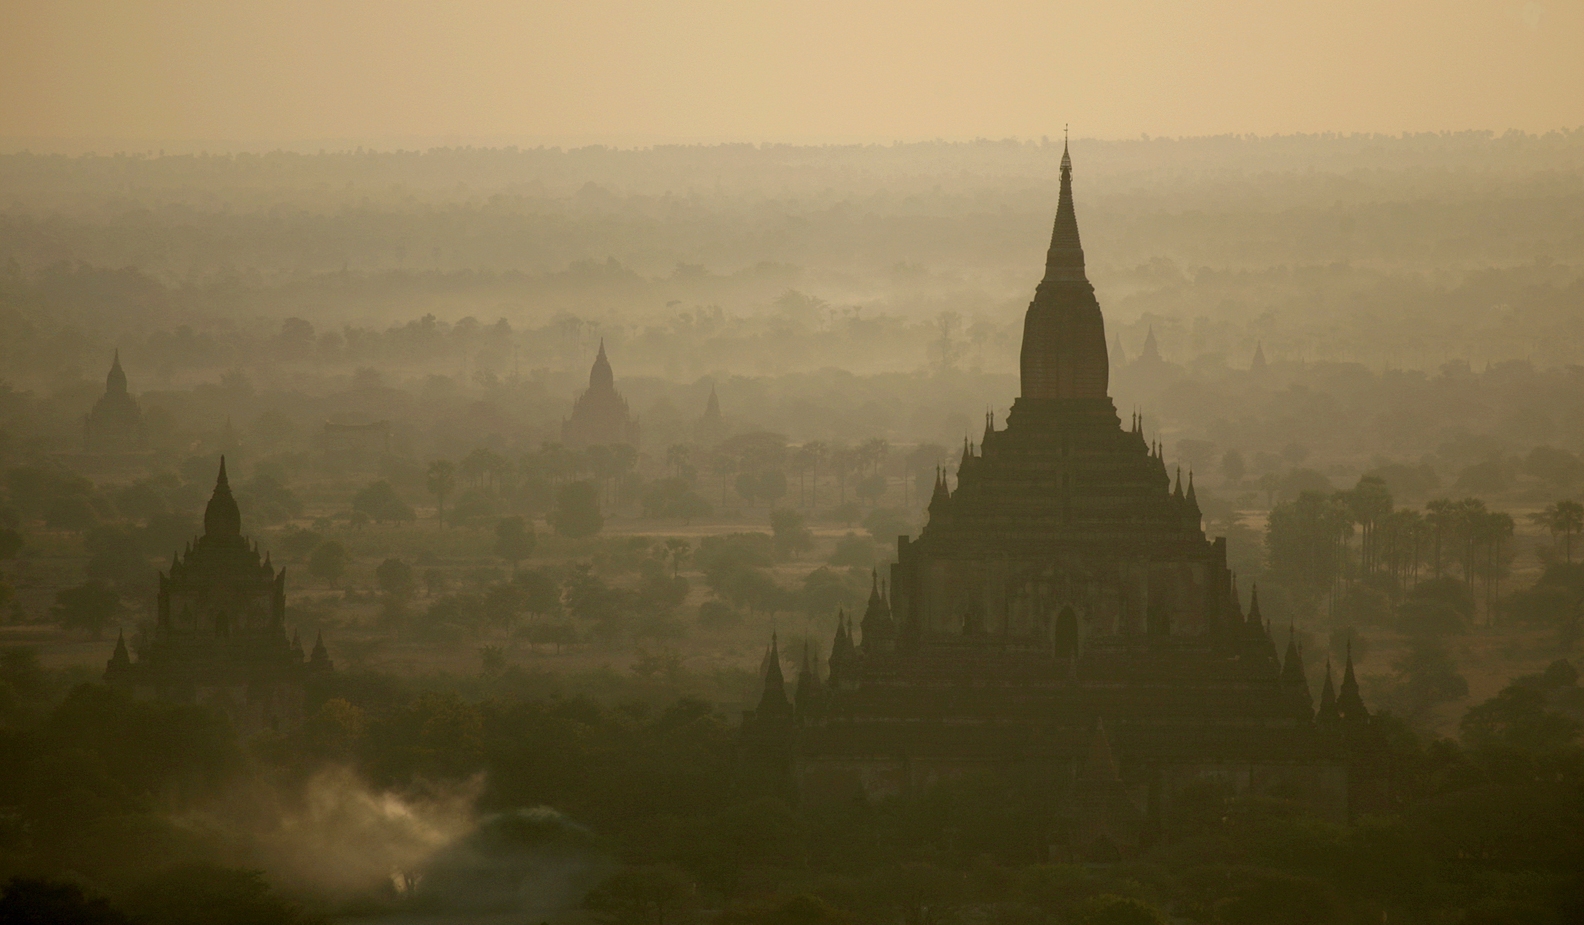 Bagan ~ Sulamani Guphaya at Sunrise